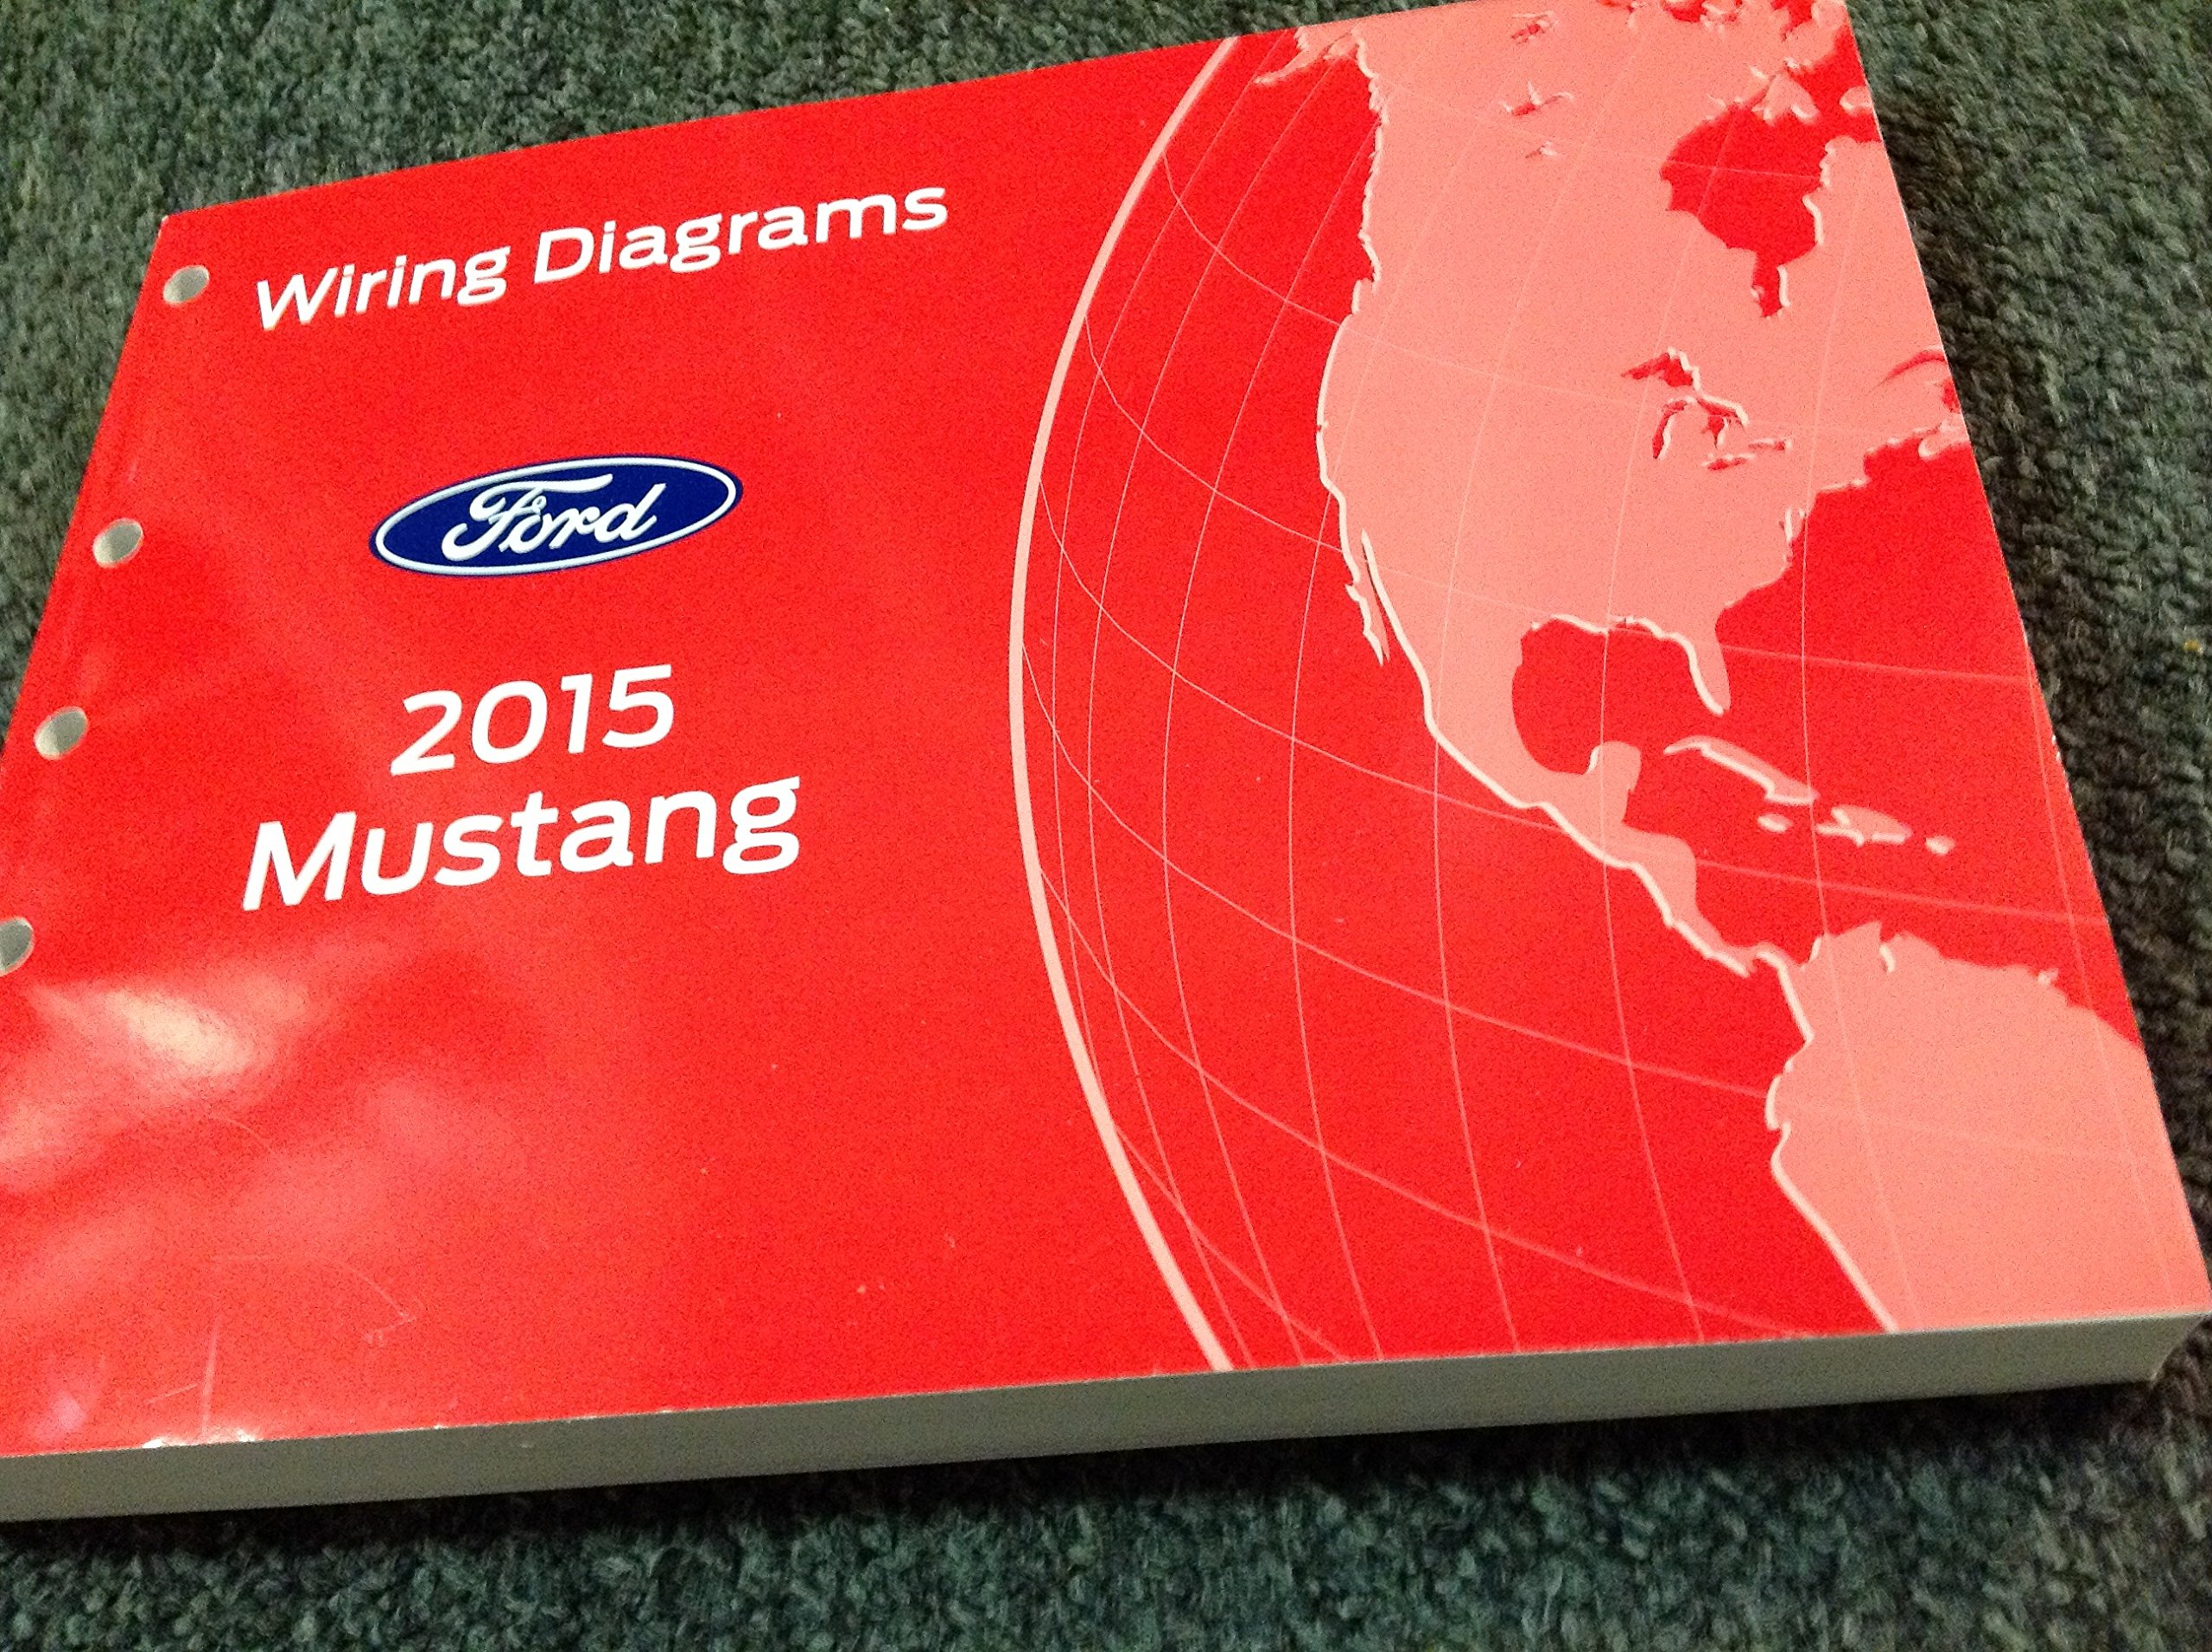 2015 Ford Mustang Wiring Electrical Diagram Manual Oem New Ewd. 2015 Ford Mustang Wiring Electrical Diagram Manual Oem New Ewd Amazon Books. Ford. 2015 Ford Mustang Wiring At Scoala.co